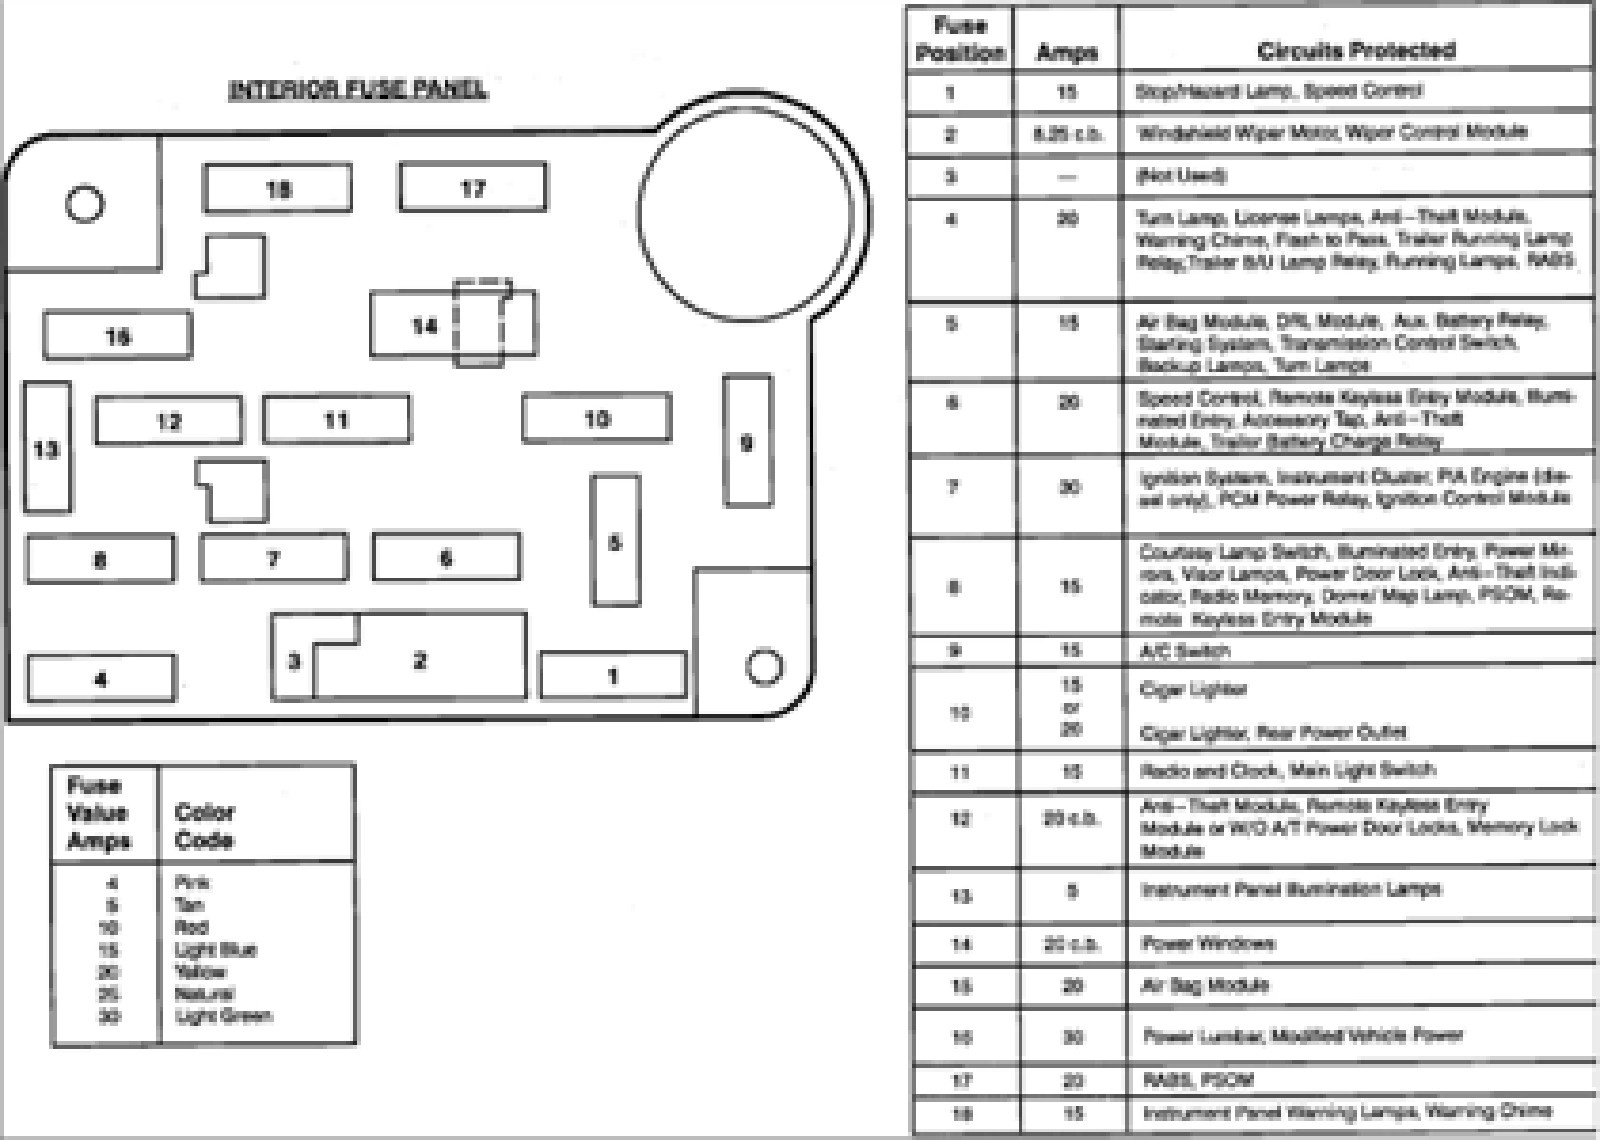 2000 ford e250 fuse panel diagram online schematic diagram u2022 rh holyoak co 2003 ford e250 van fuse box diagram 2003 ford econoline e150 fuse box diagram